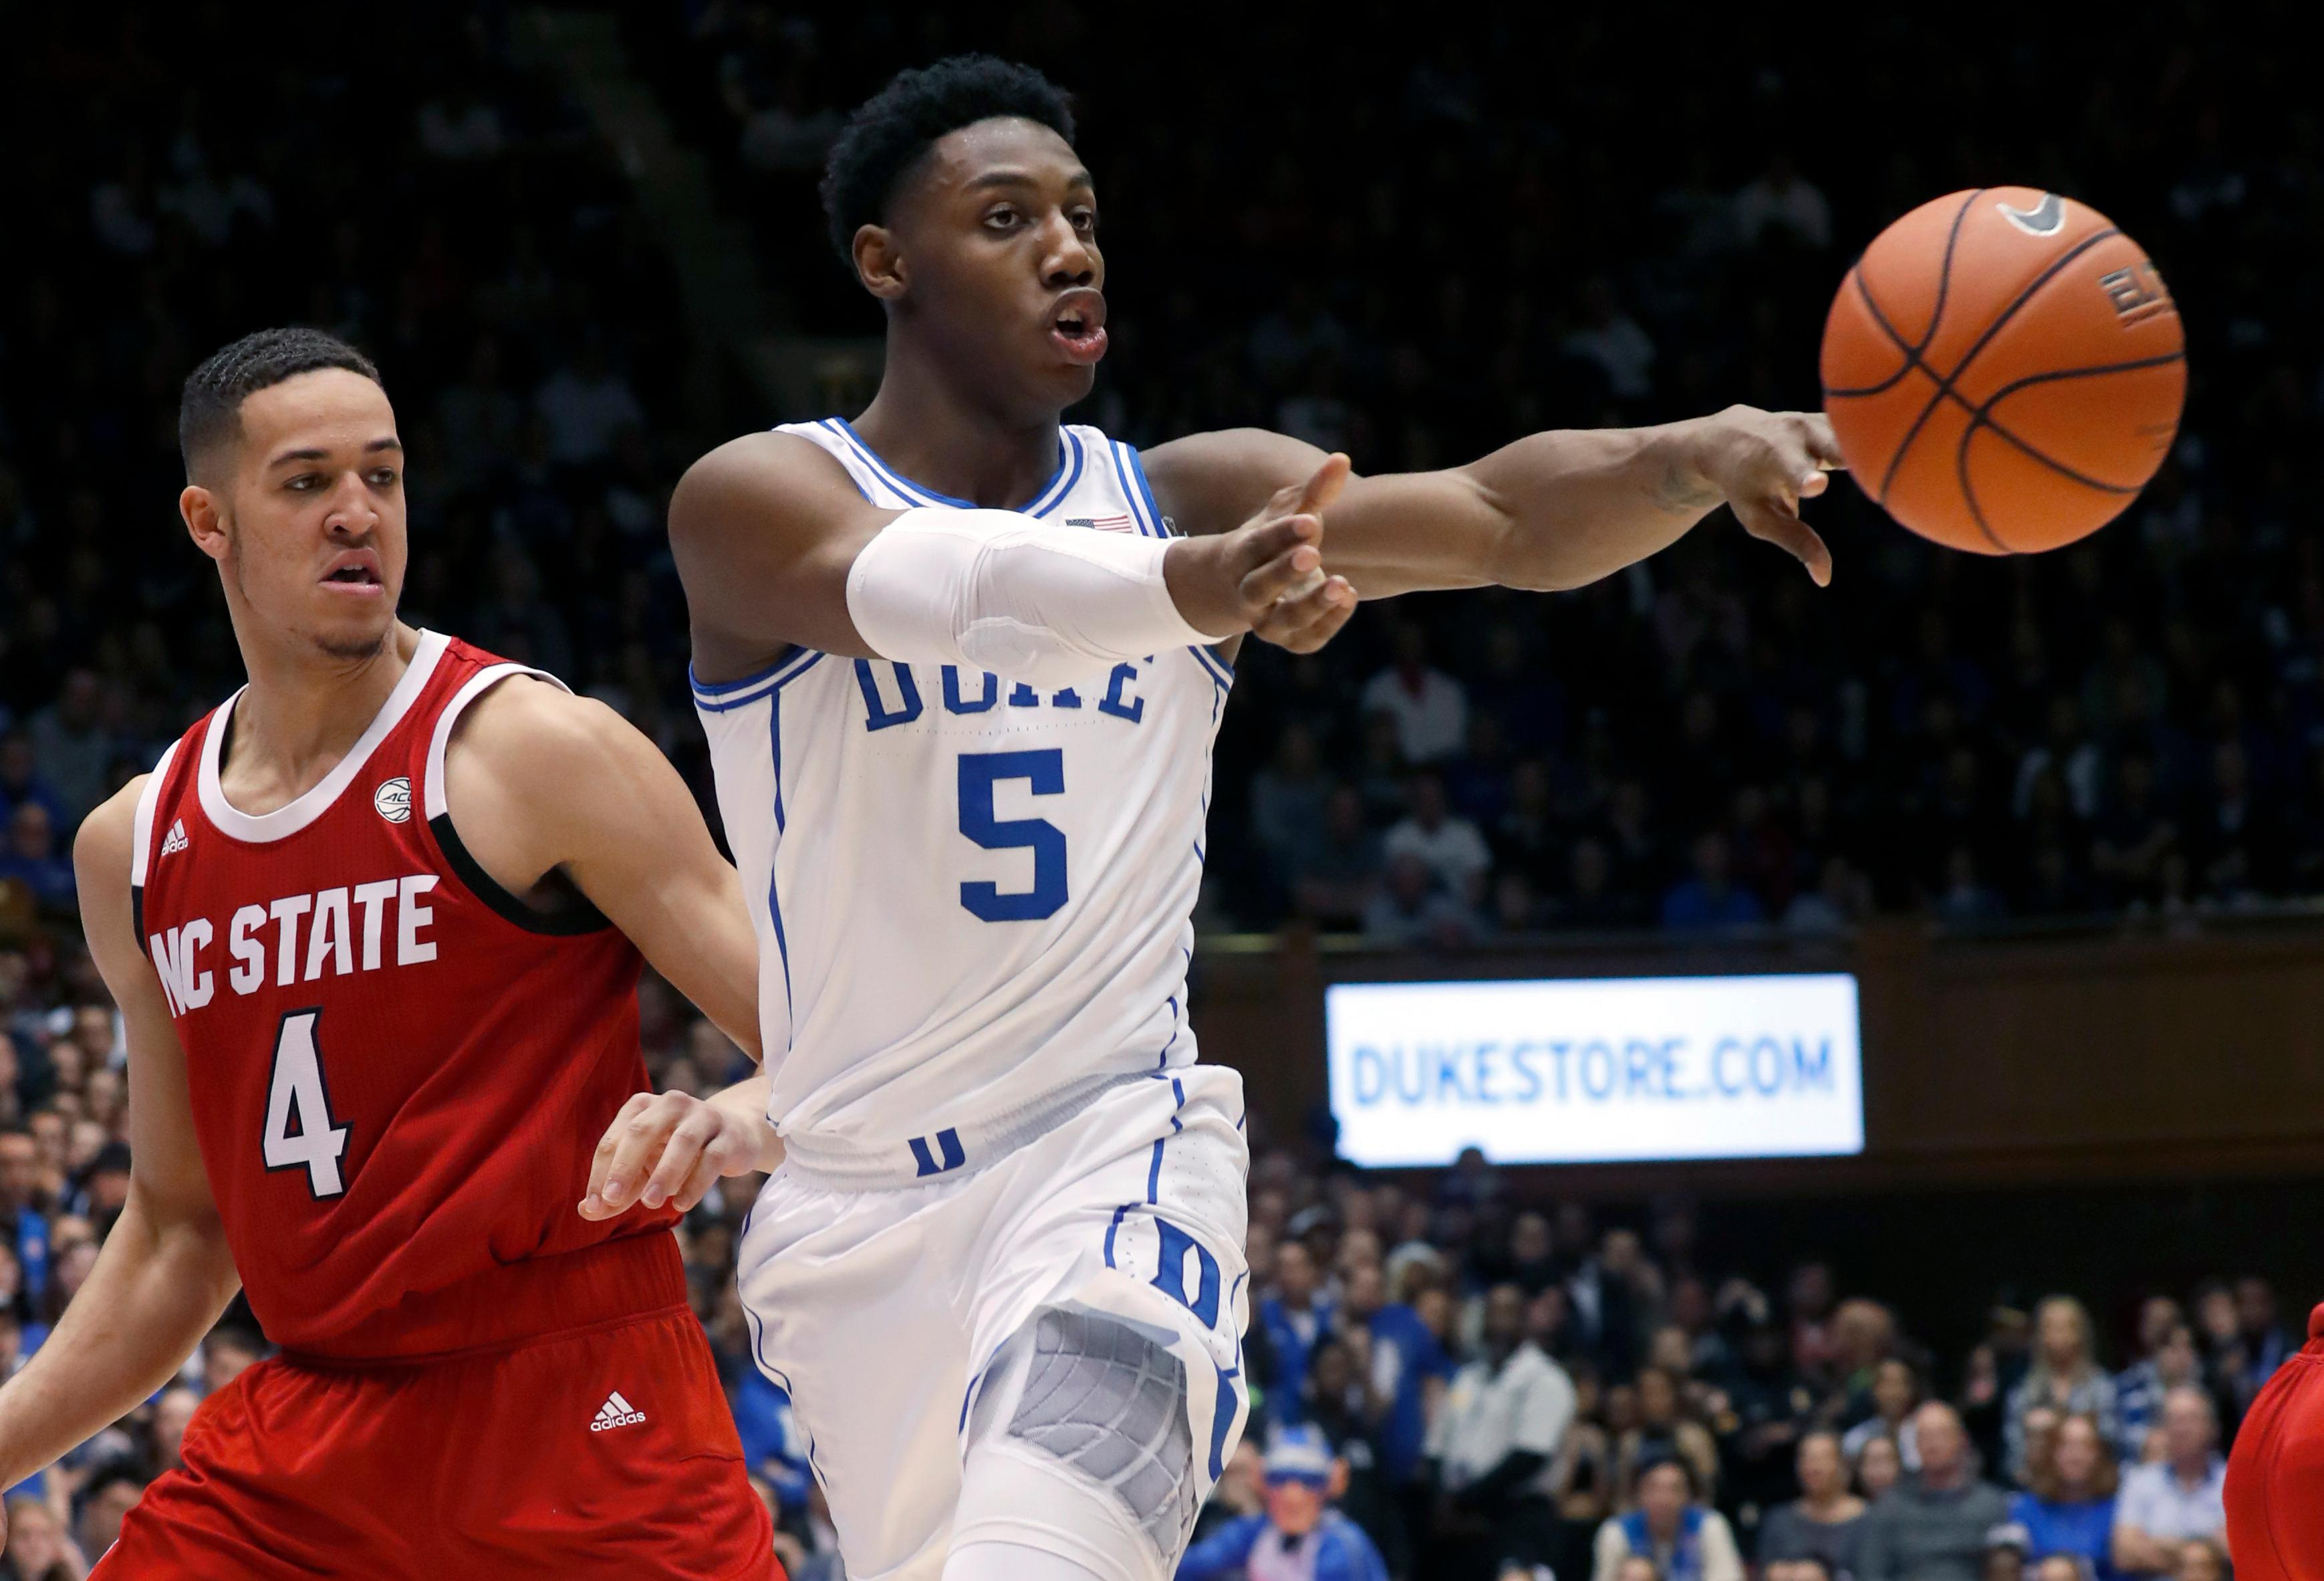 File-This Feb. 16, 2019, file photo shows Duke's RJ Barrett (5) passing the ball against North Carolina State's Jericole Hellems (4) during the second half of an NCAA college basketball game in Durham, N.C. Barrett leads the Atlantic Coast Conference in scoring. He just recorded Duke's first triple-double in 13 years. And as long as his roommate Zion Williamson is still around, he won't have top-billing for the top-ranked Blue Devils.That's just fine with Barrett. (AP Photo/Chris Seward, File)